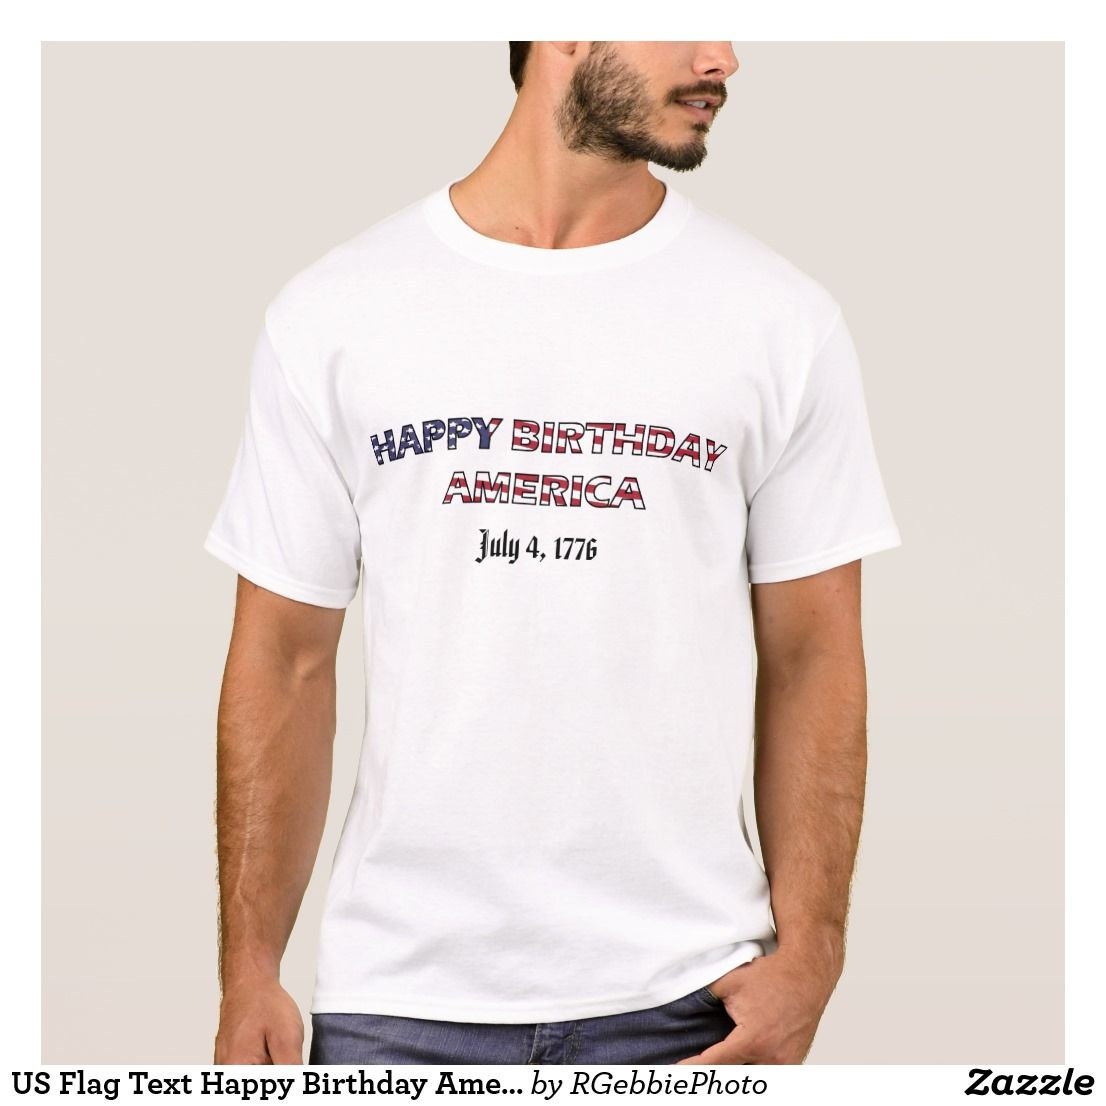 US Flag Text Happy Birthday America T Shirt 2365 United States In Red White And Blue Says The Date Is July 4 1776